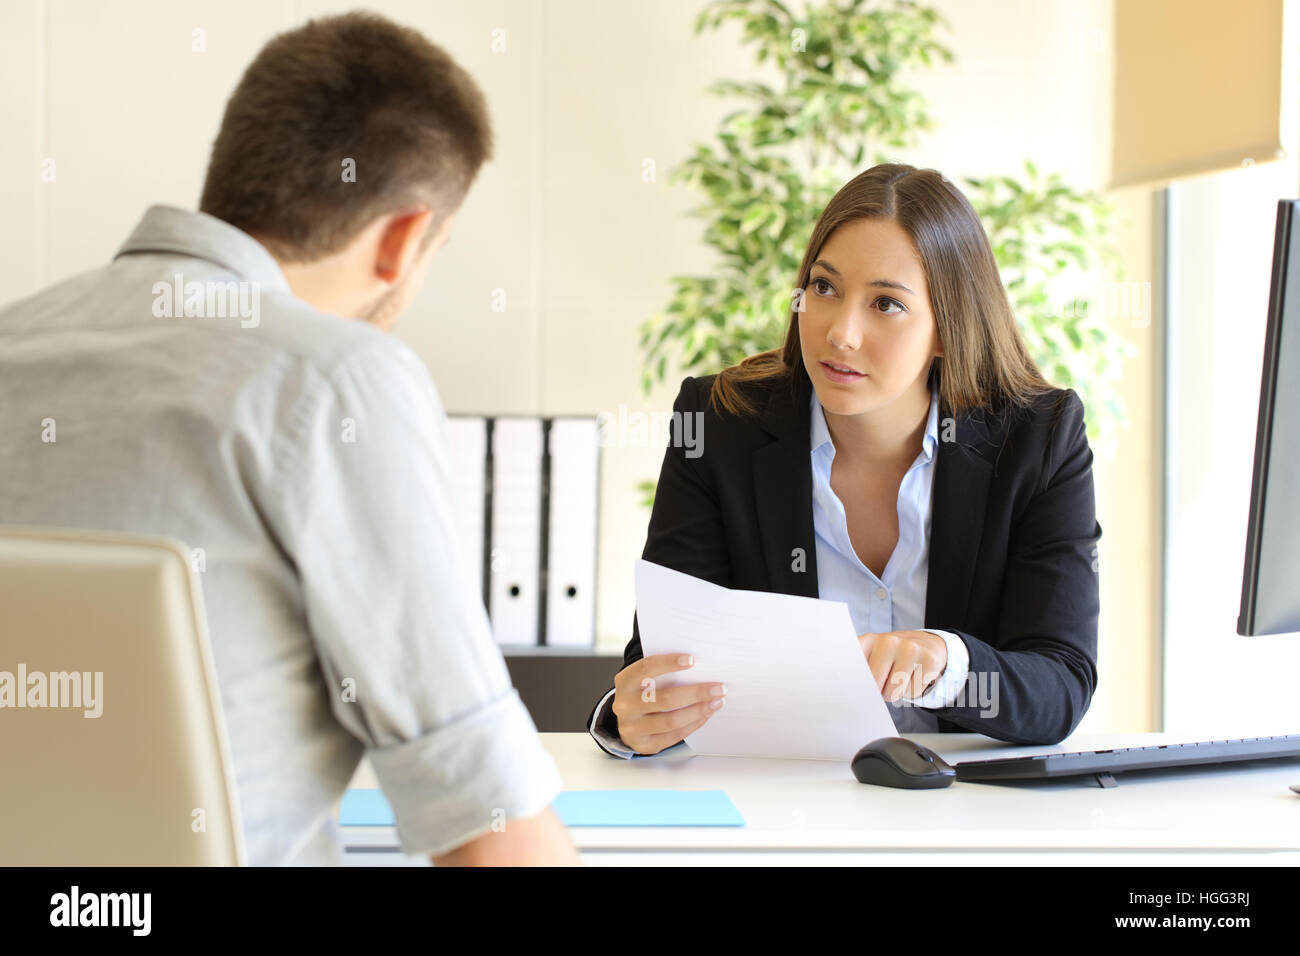 Guy and businesswoman talking in a job interview in an office - Stock Image